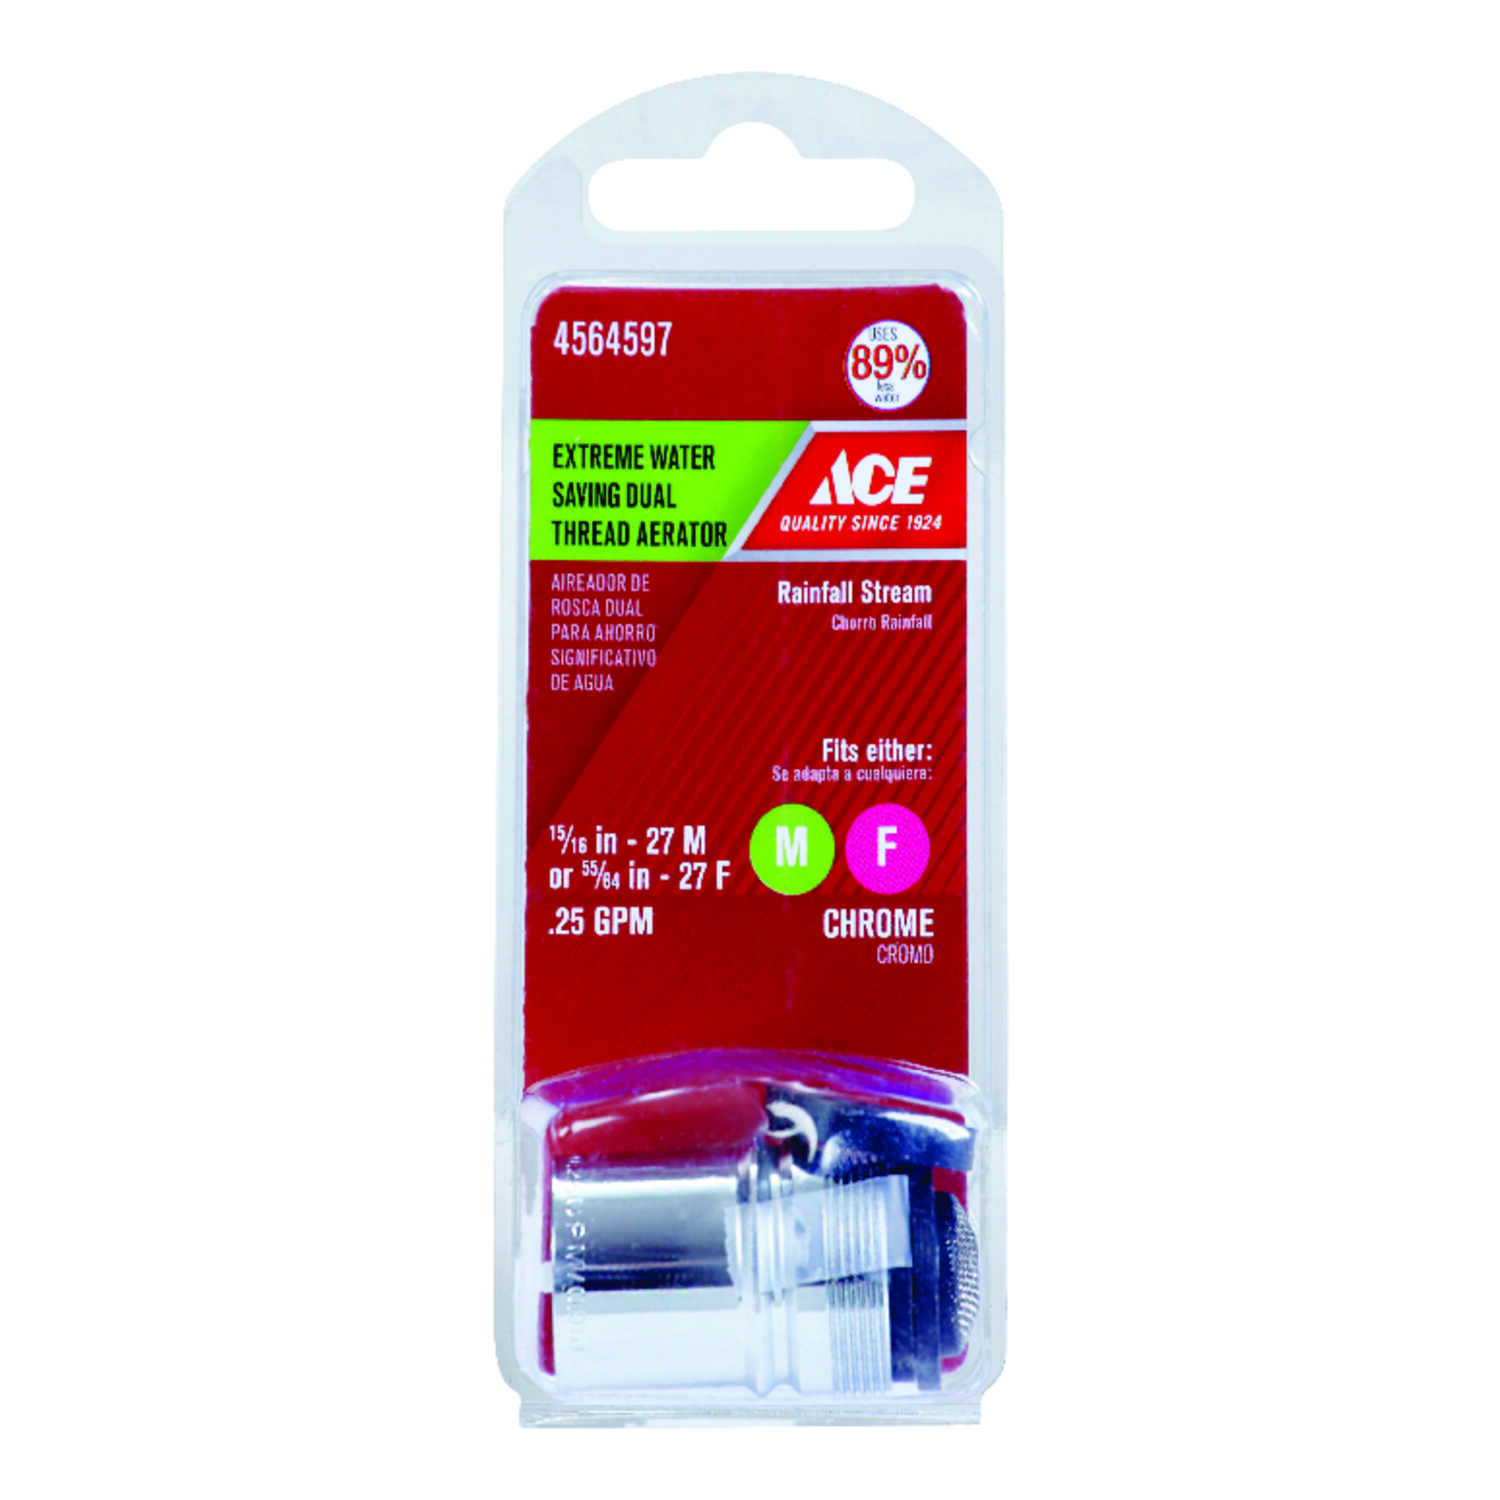 Ace  Dual Thread Aerator  15/16 in.  x 55/64 in.  Chrome